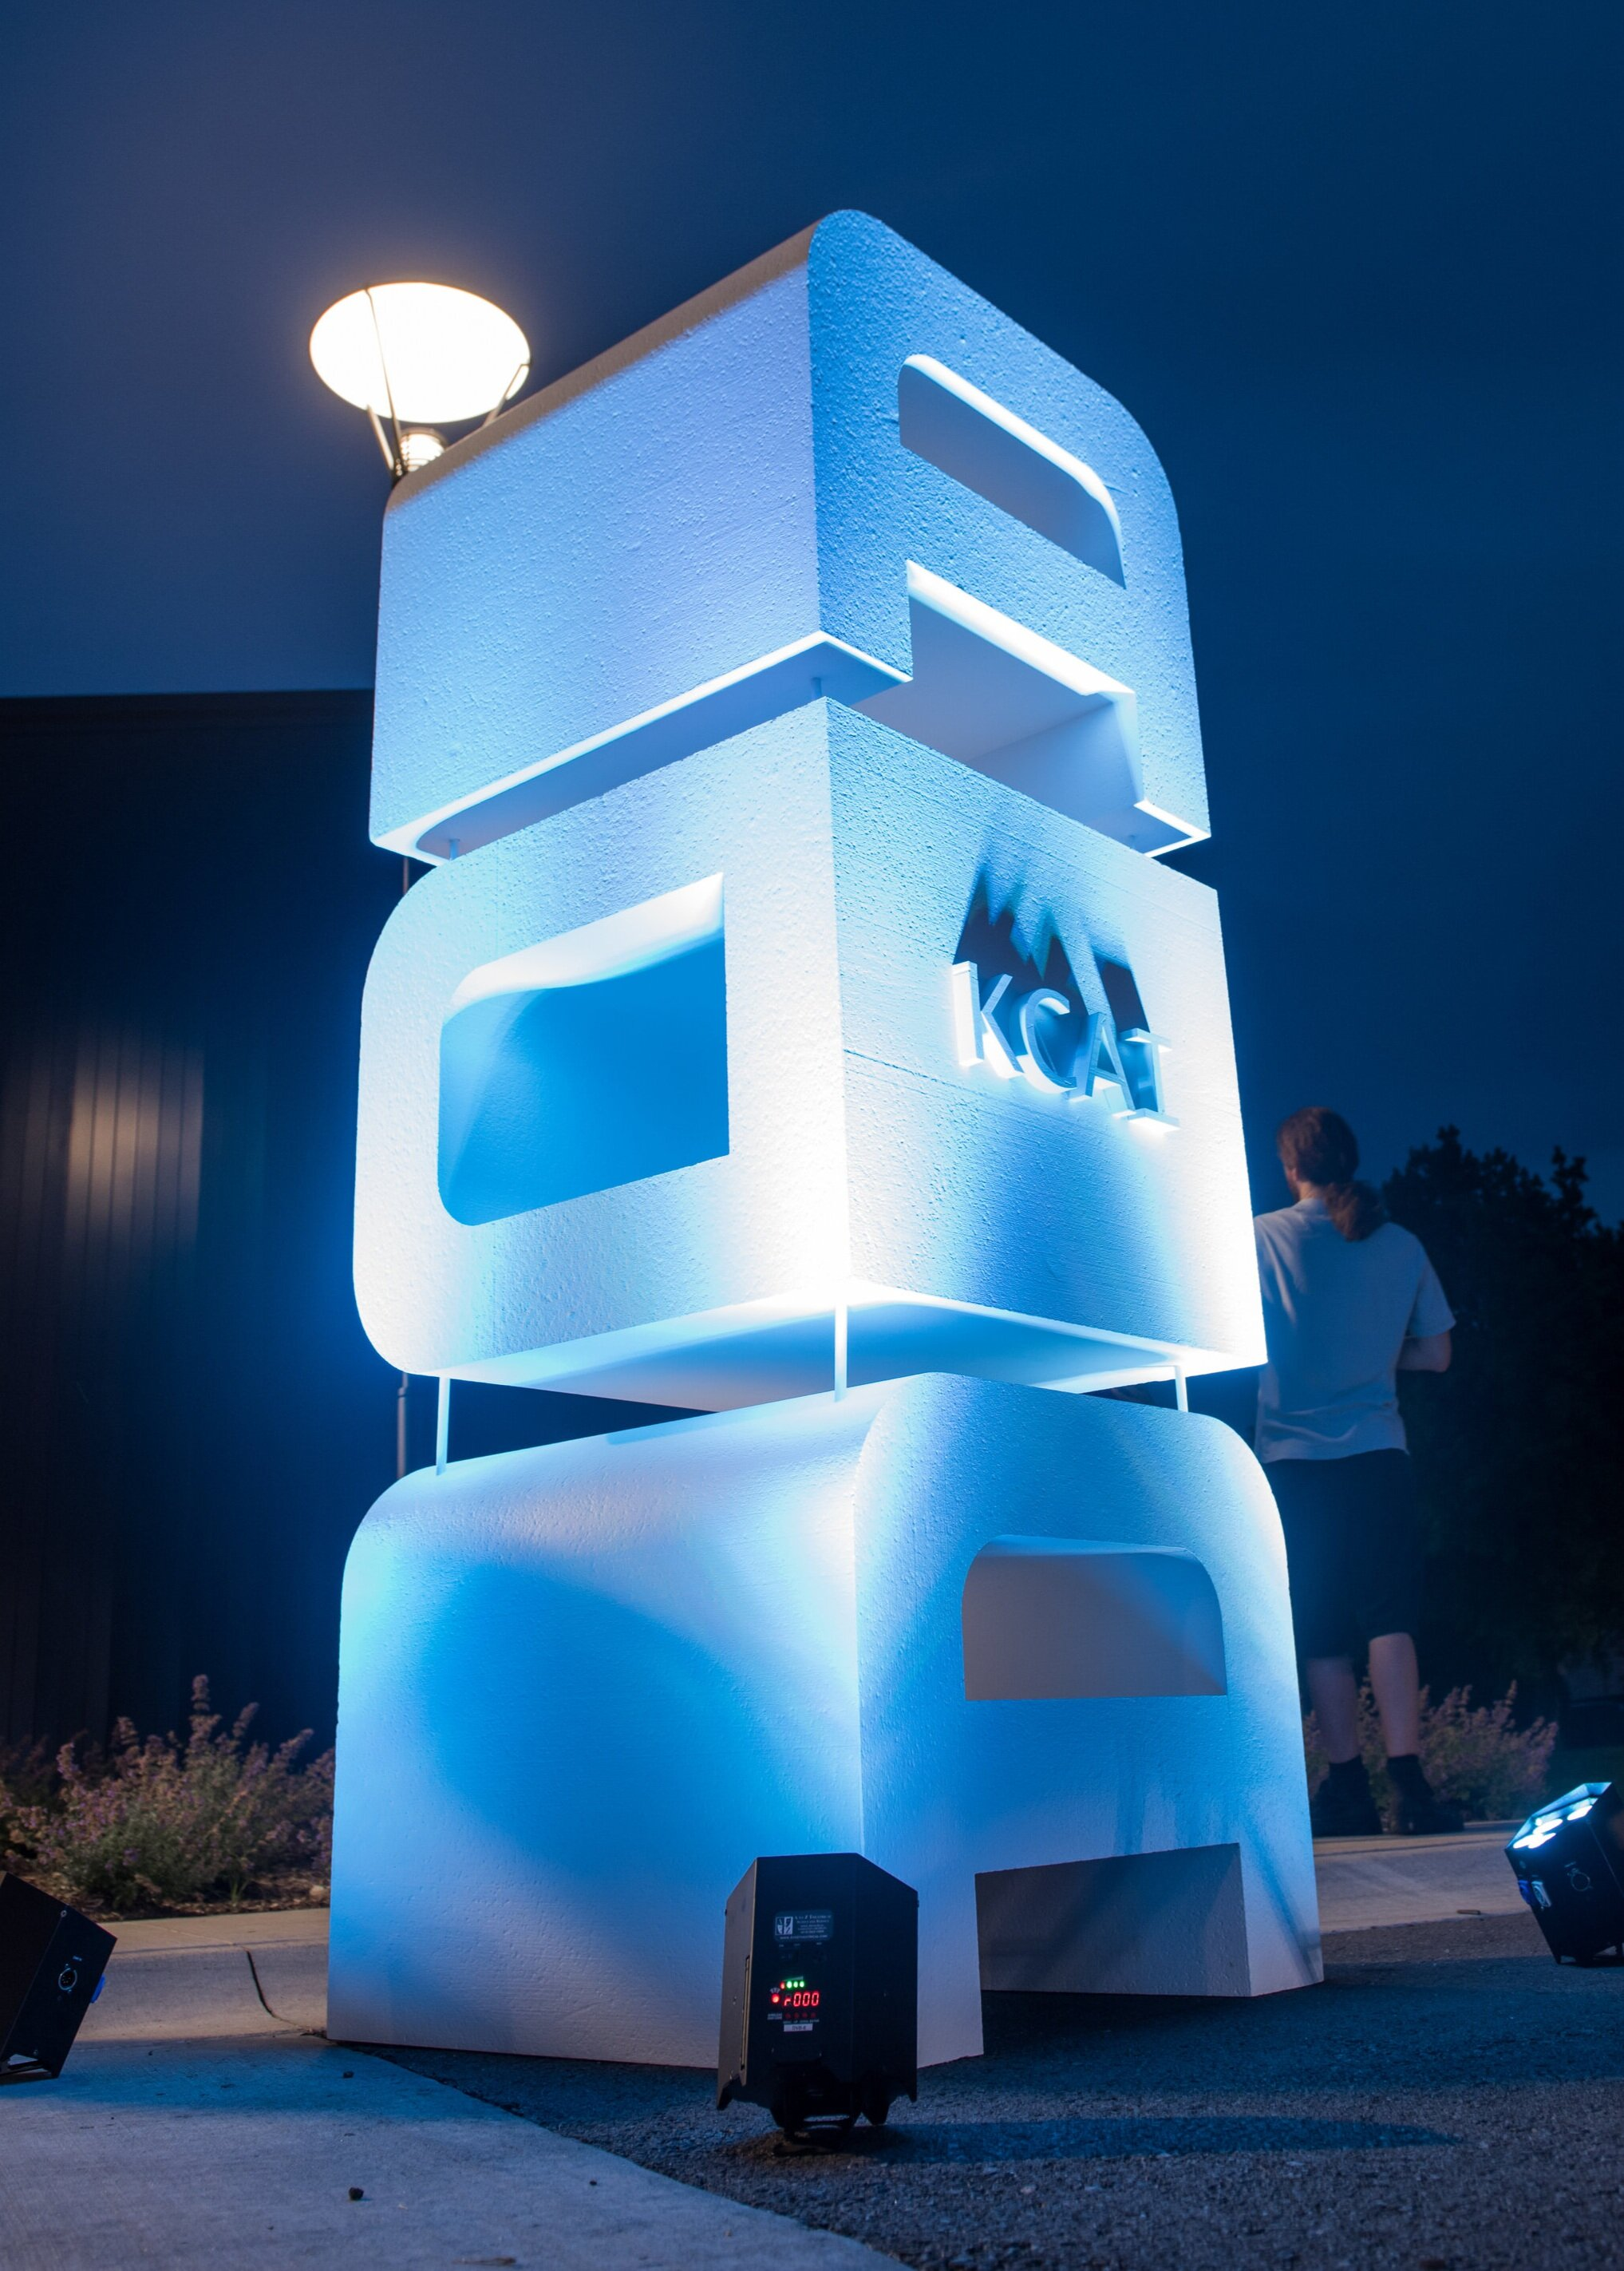 The ADA Logo (design by Eric McLaughlin) was used along with other invite design elements to inform sculptural installations like the one shown above that enhanced the event experience.